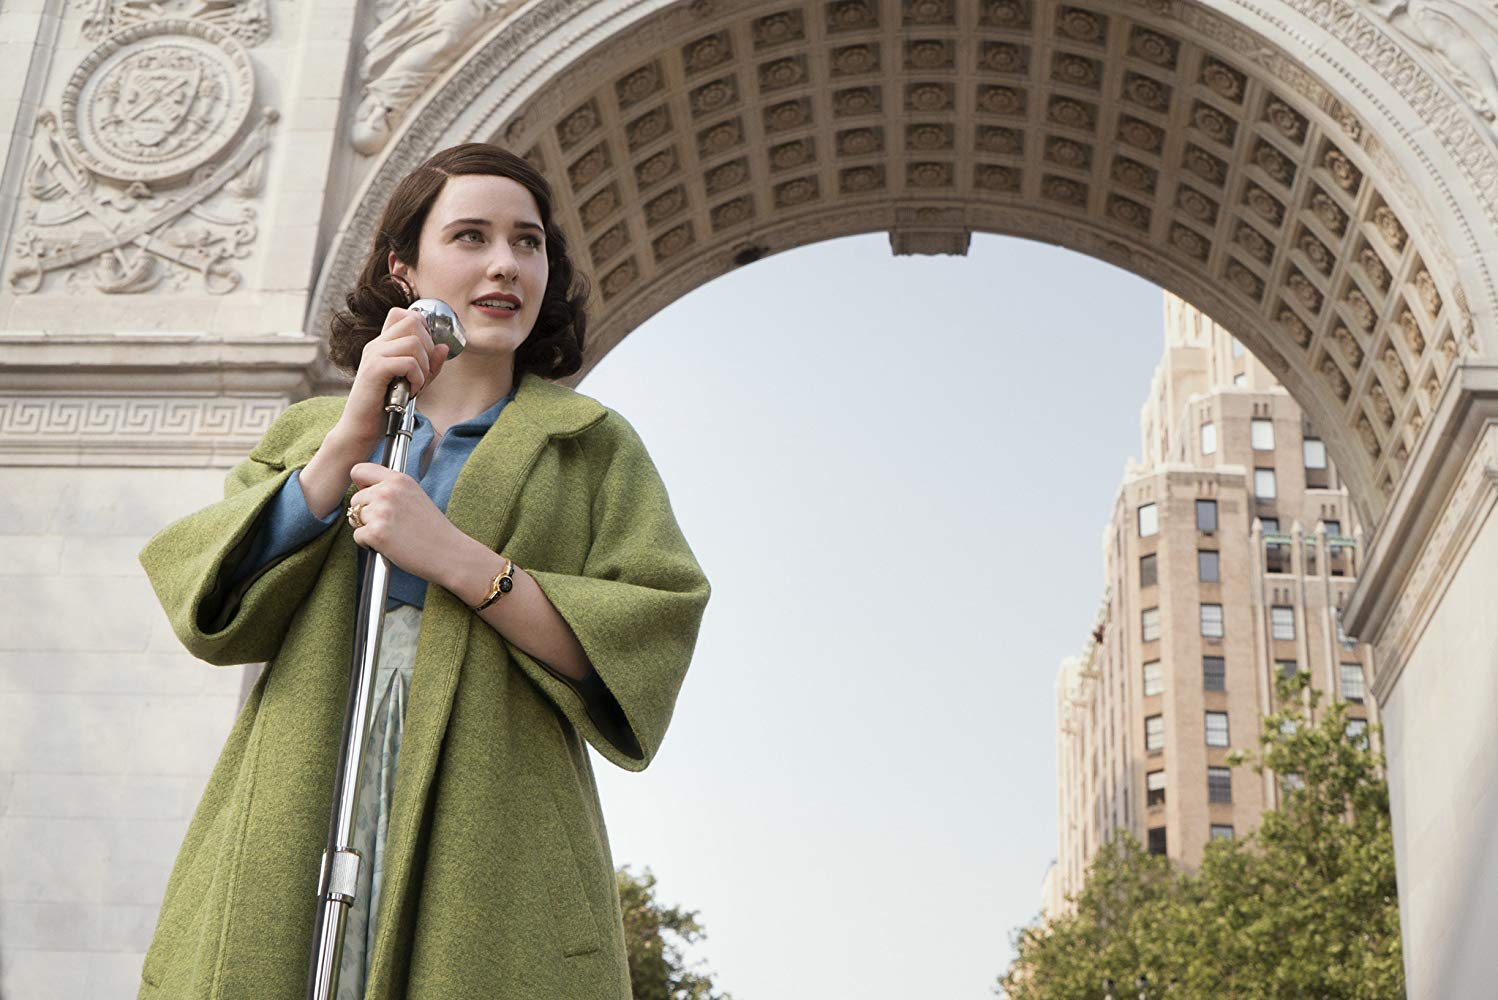 NYC Film Locations Guide to The Marvelous Mrs. Maisel Washington square park